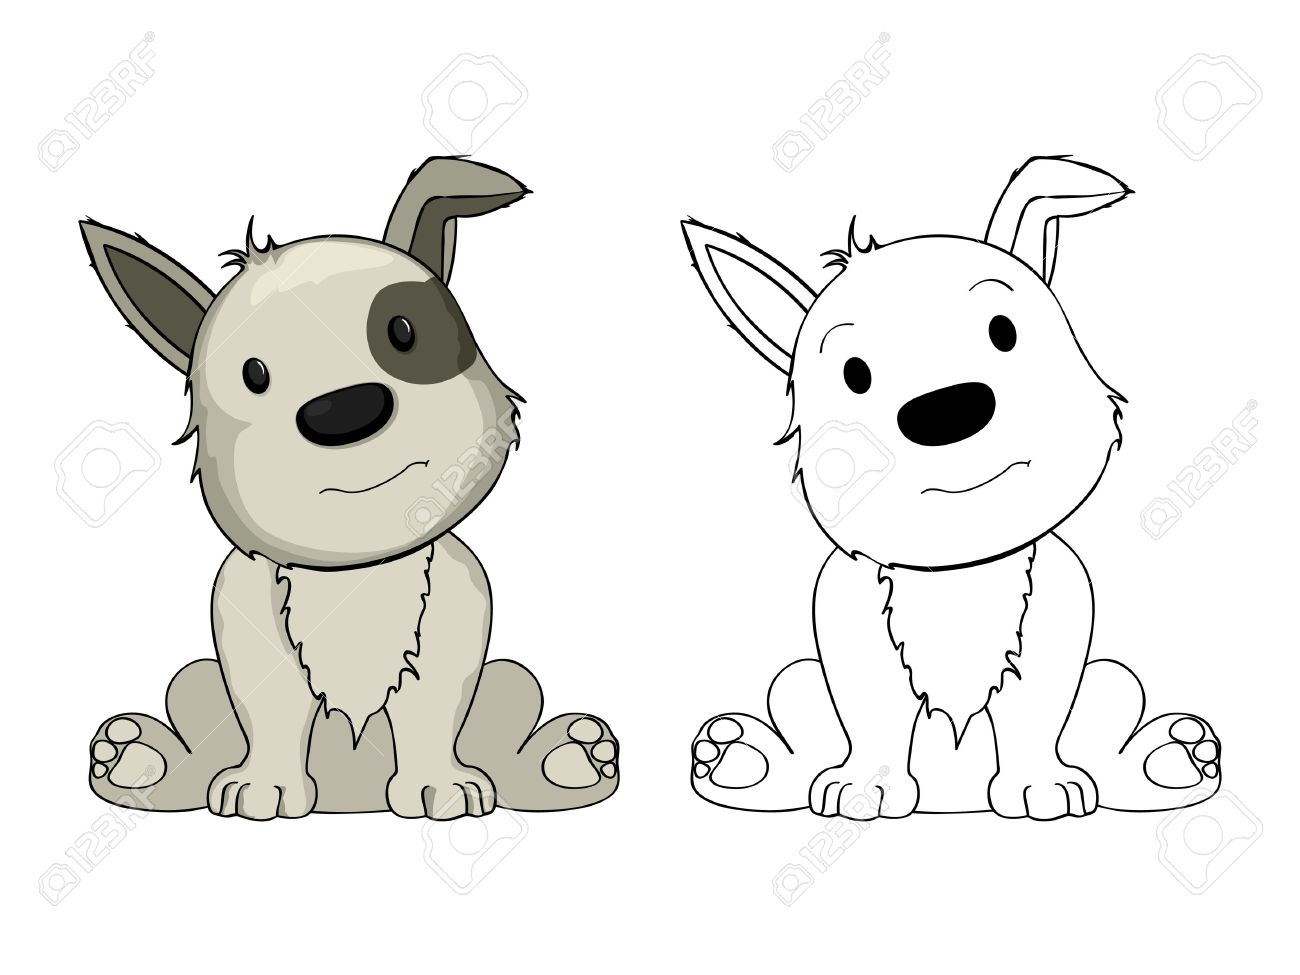 1300x975 Puppy Cartoon Drawing Puppy Cartoon Drawing Cartoon Puppy Drawing